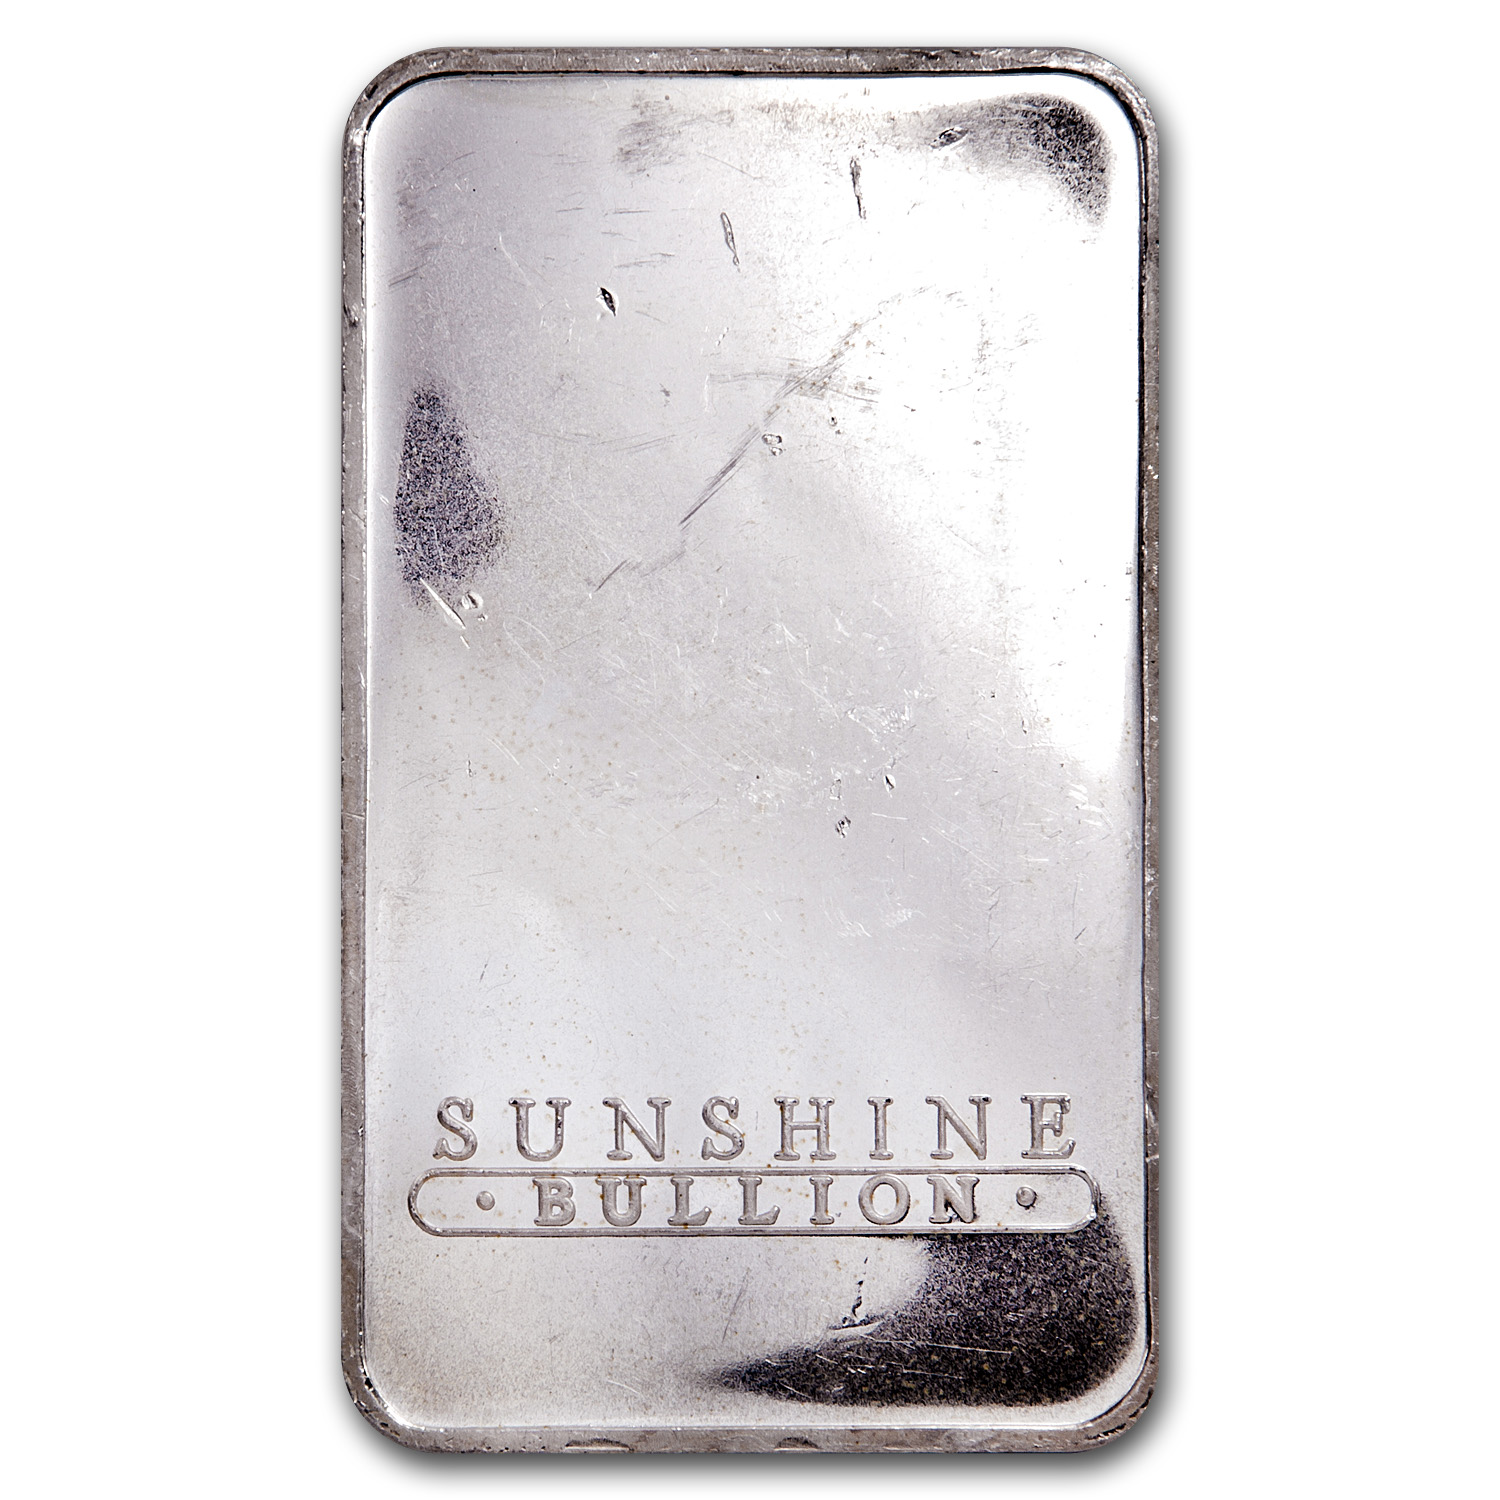 10 oz Silver Bars - Sunshine (Vintage)